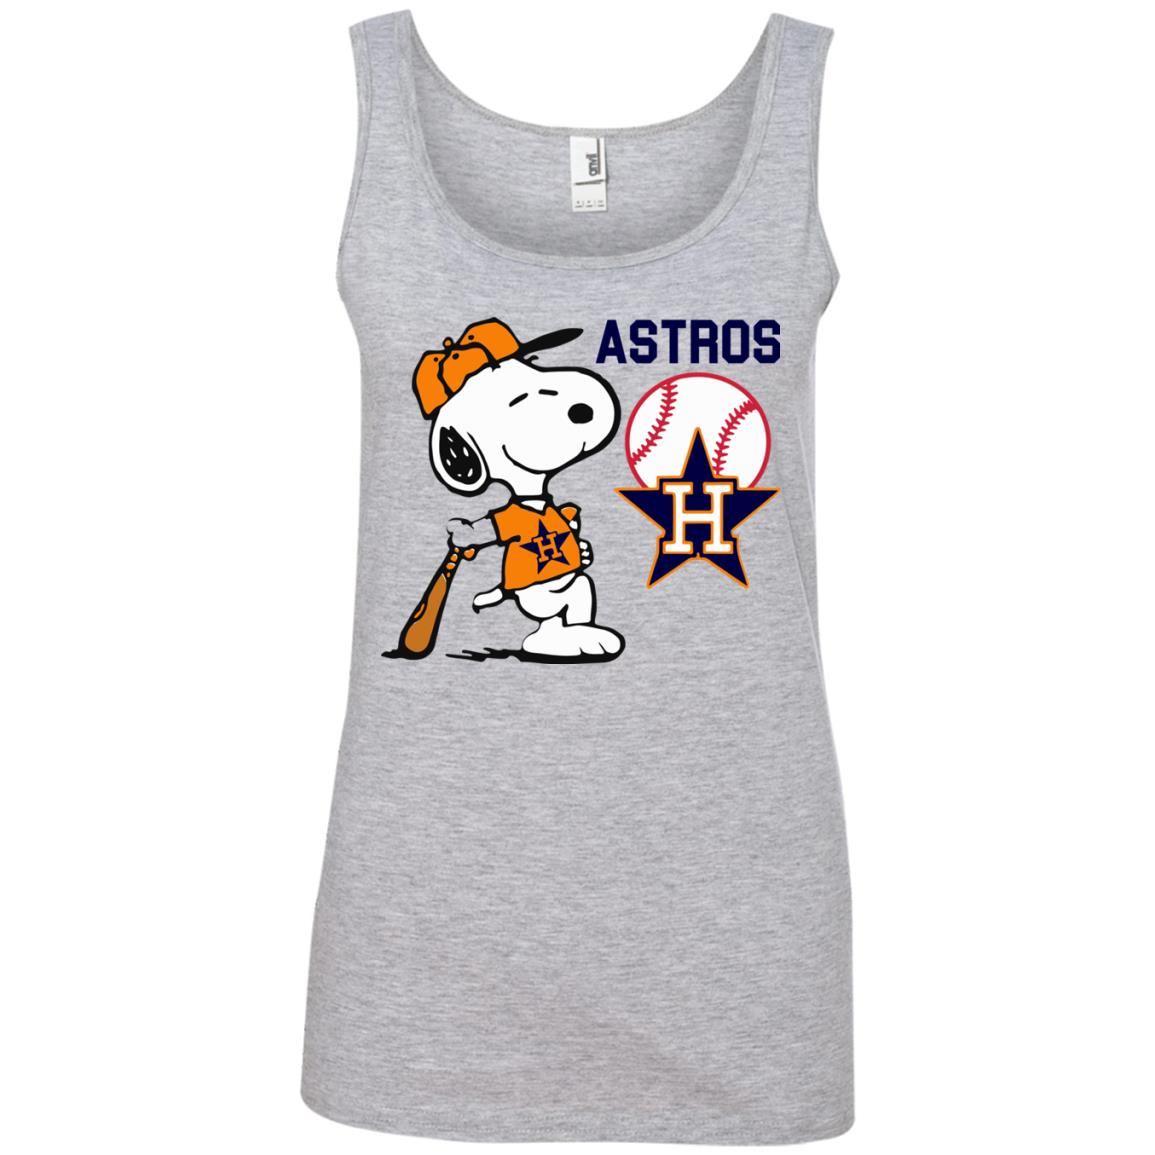 image 972 - Snoopy Houston Astros Shirt, Sweater, Hoodie